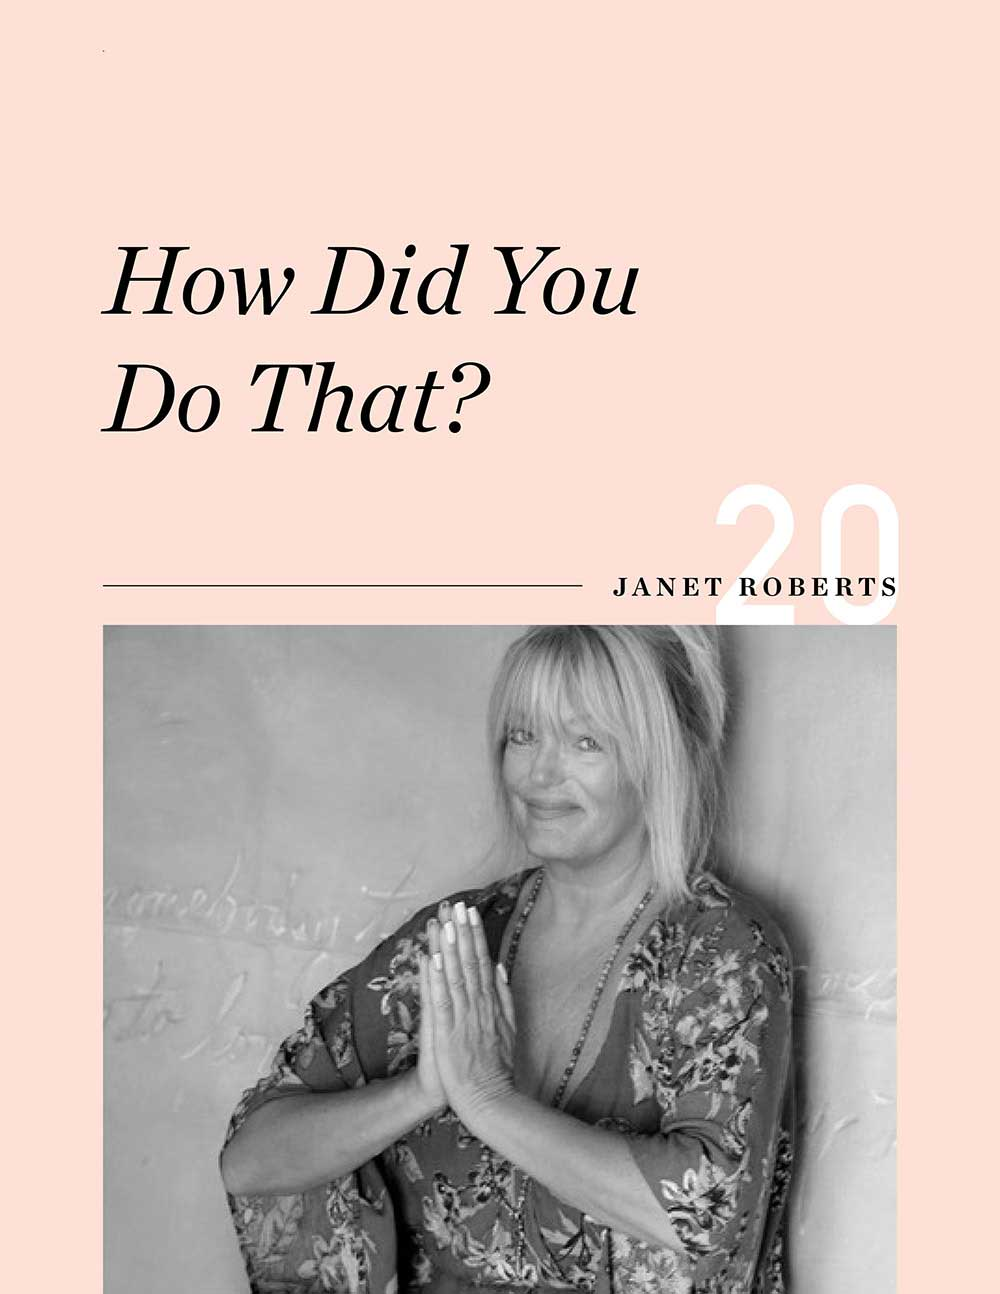 Janet-Roberts-How-Did-You-Do-That.jpg